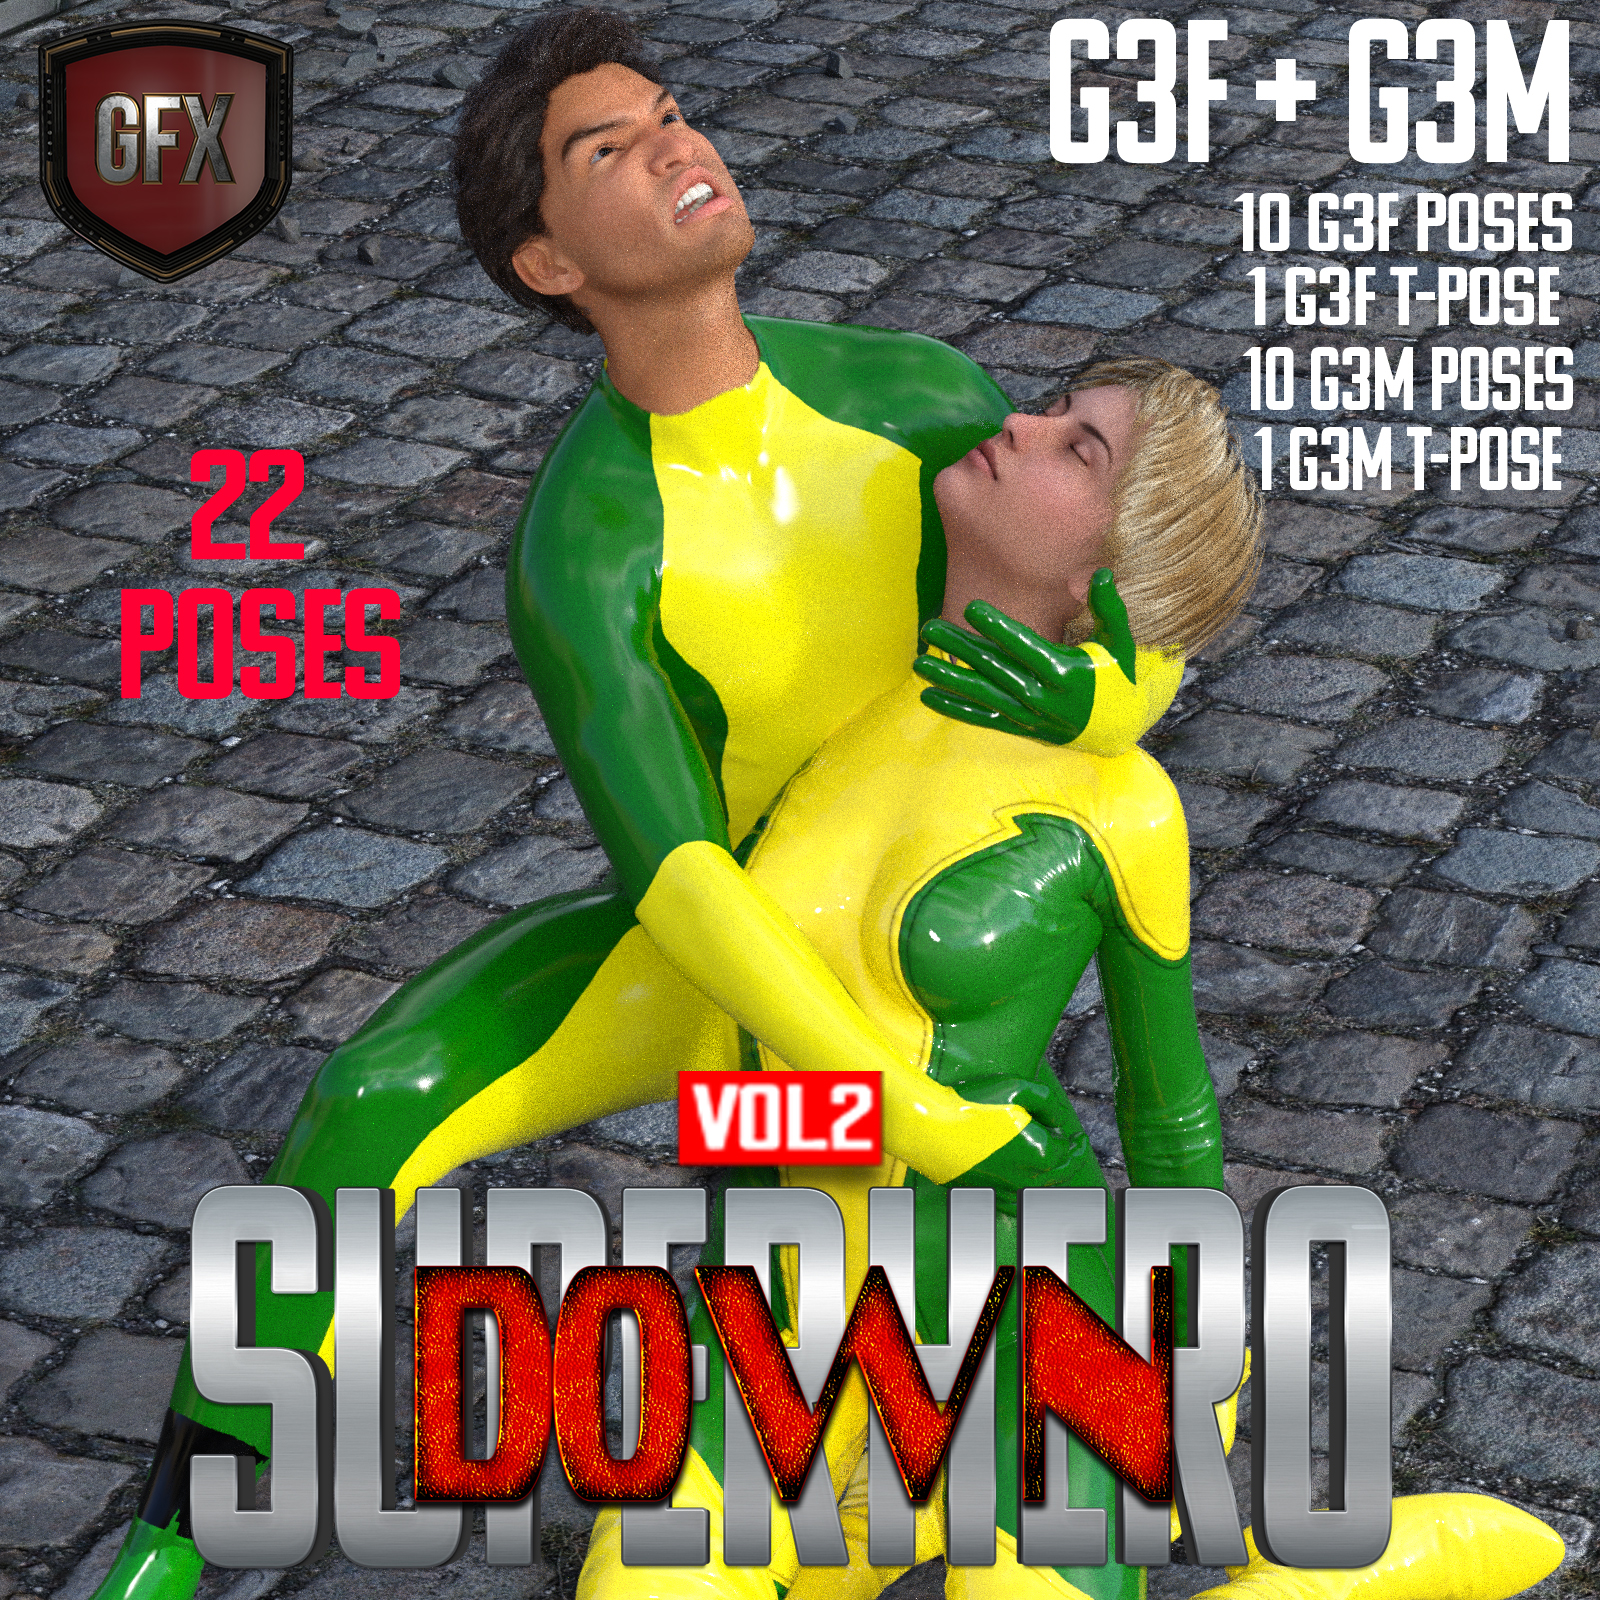 SuperHero Down for G3F and G3M Volume 2